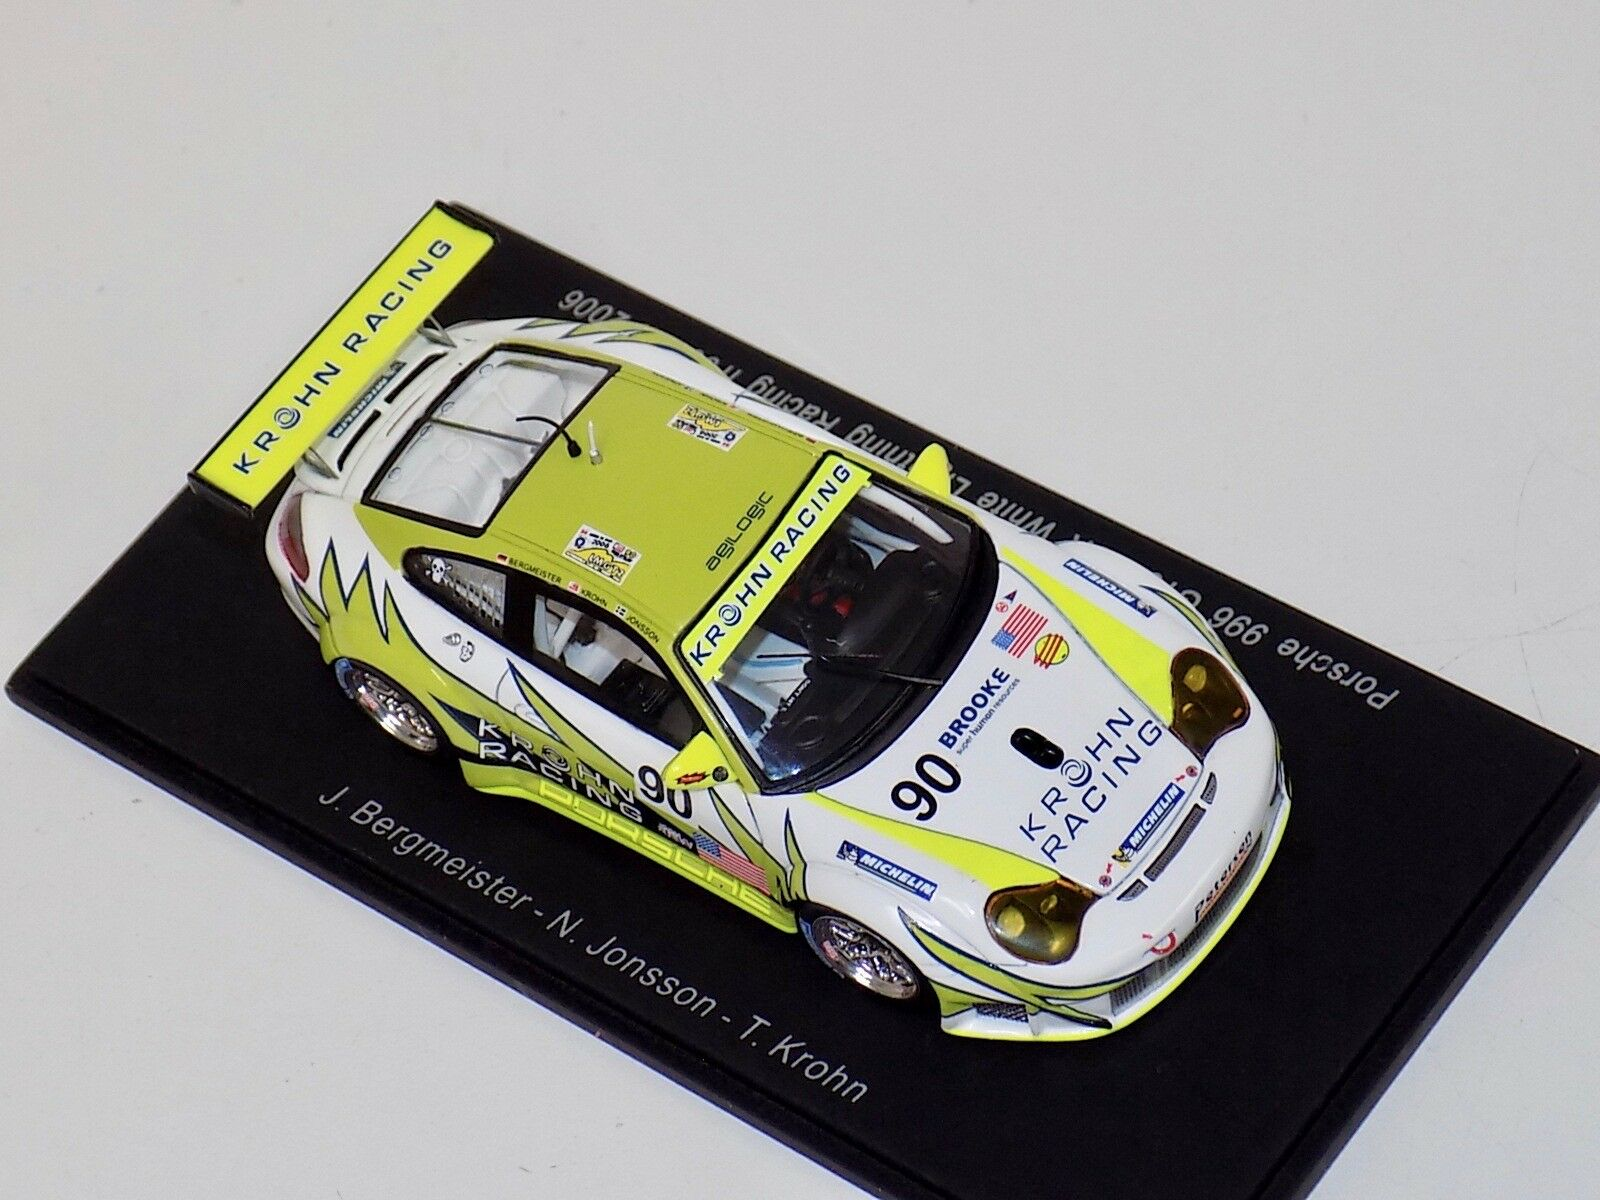 1 43 Spark Porsche 911 GT3 RSR RSR RSR Car Hours of LeMans  S0972 ff1ce6